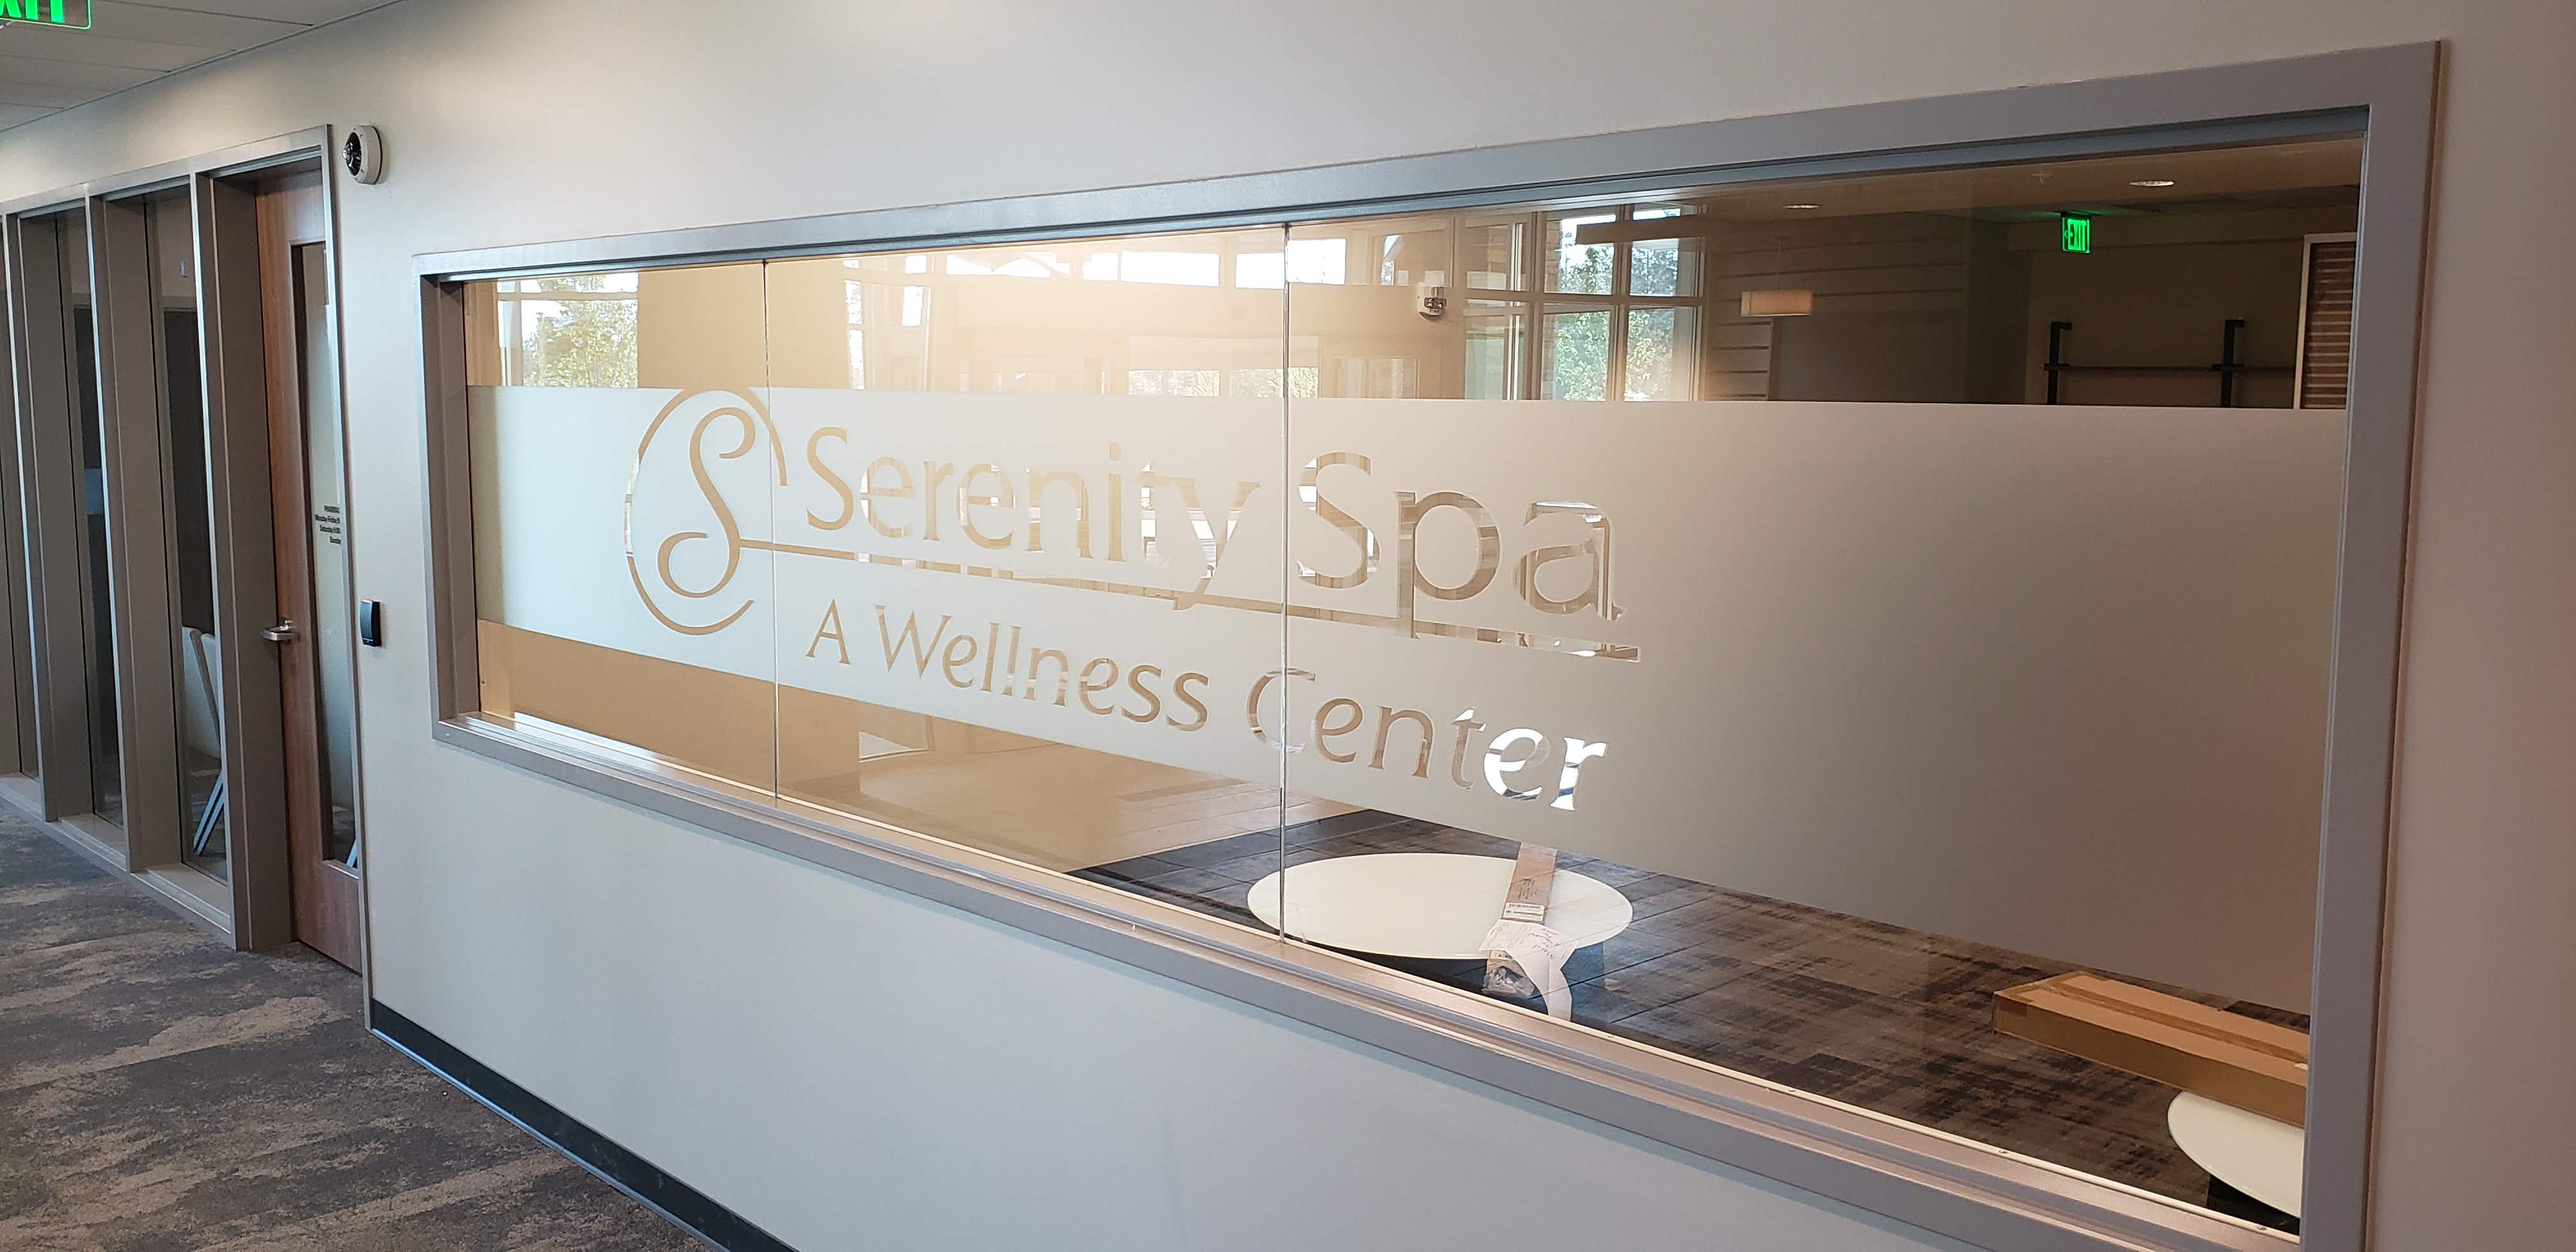 A spa and wellness center with a precision cut decorative film logo spanning multiple panes of glass